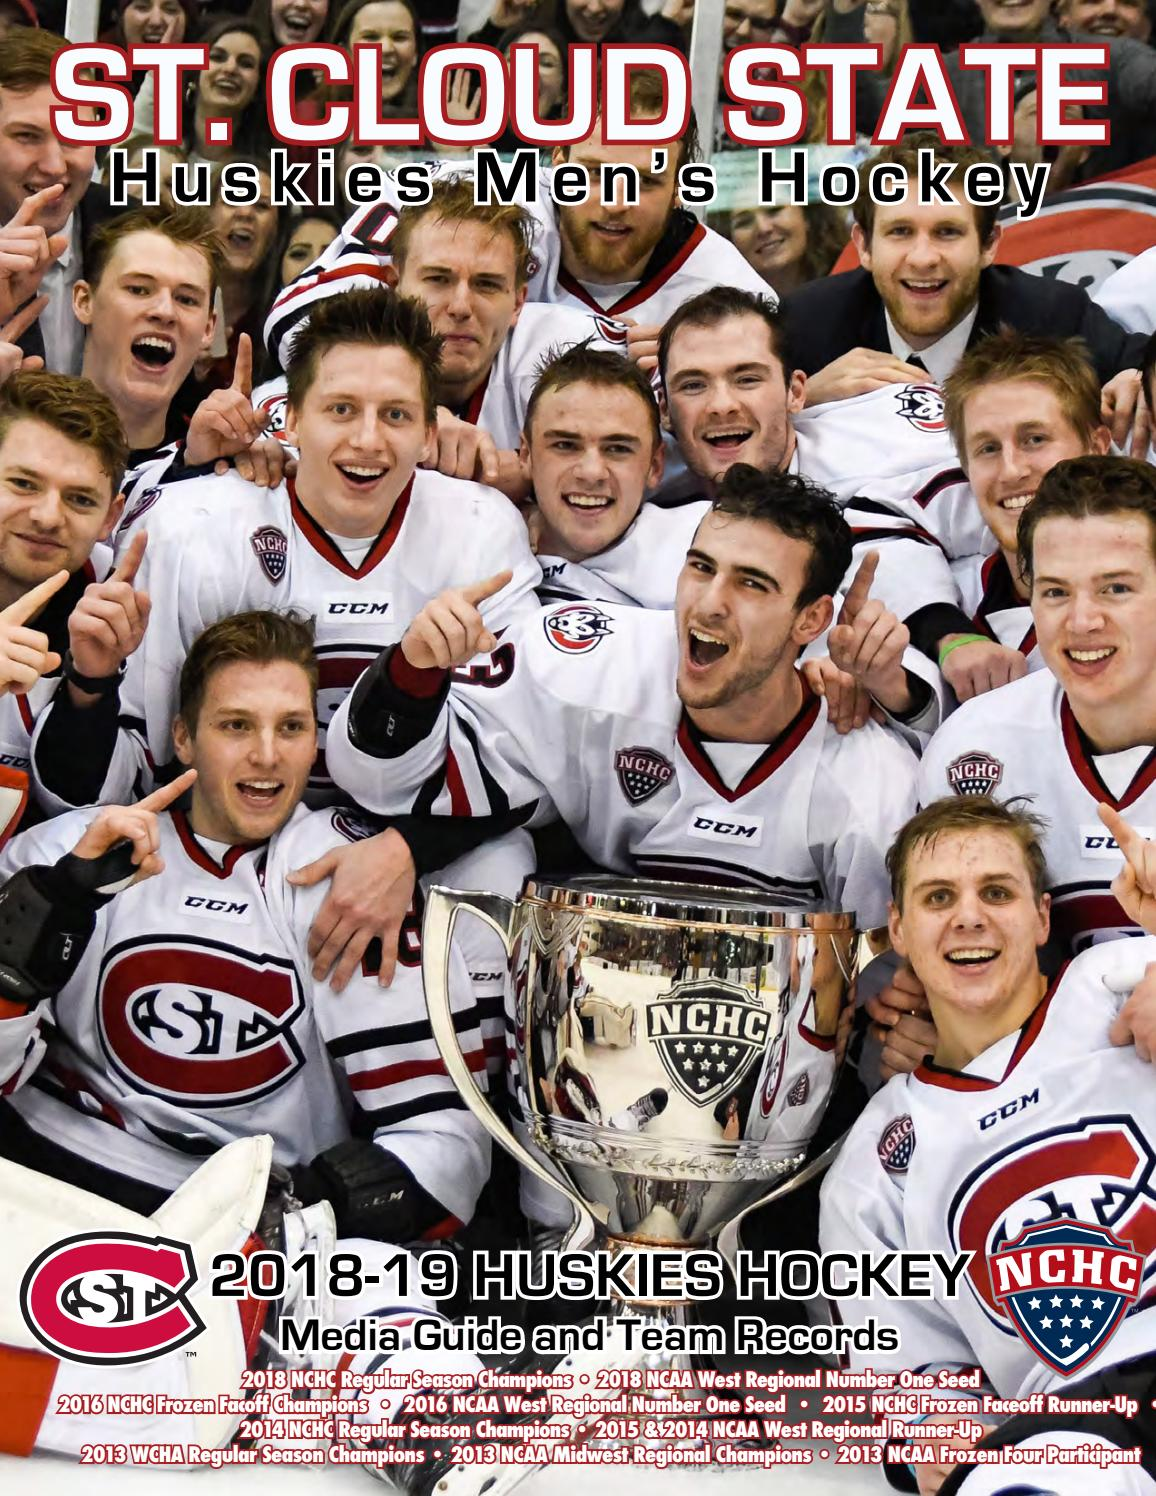 693a75a951c4 2018-19 St. Cloud State Men's Hockey Guide by Tom Nelson - issuu